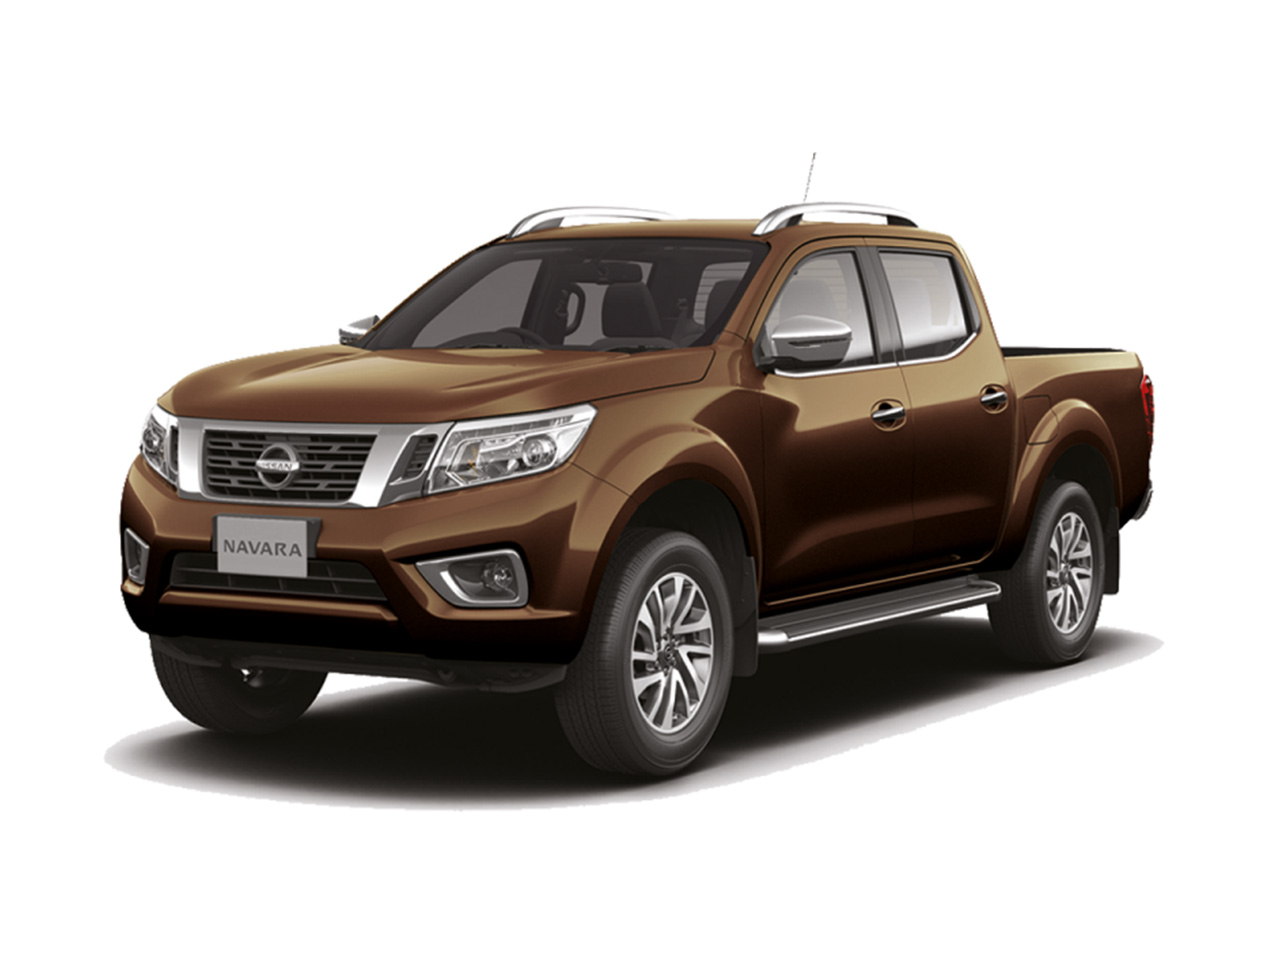 2018 nissan navara specs 2018 cars models. Black Bedroom Furniture Sets. Home Design Ideas